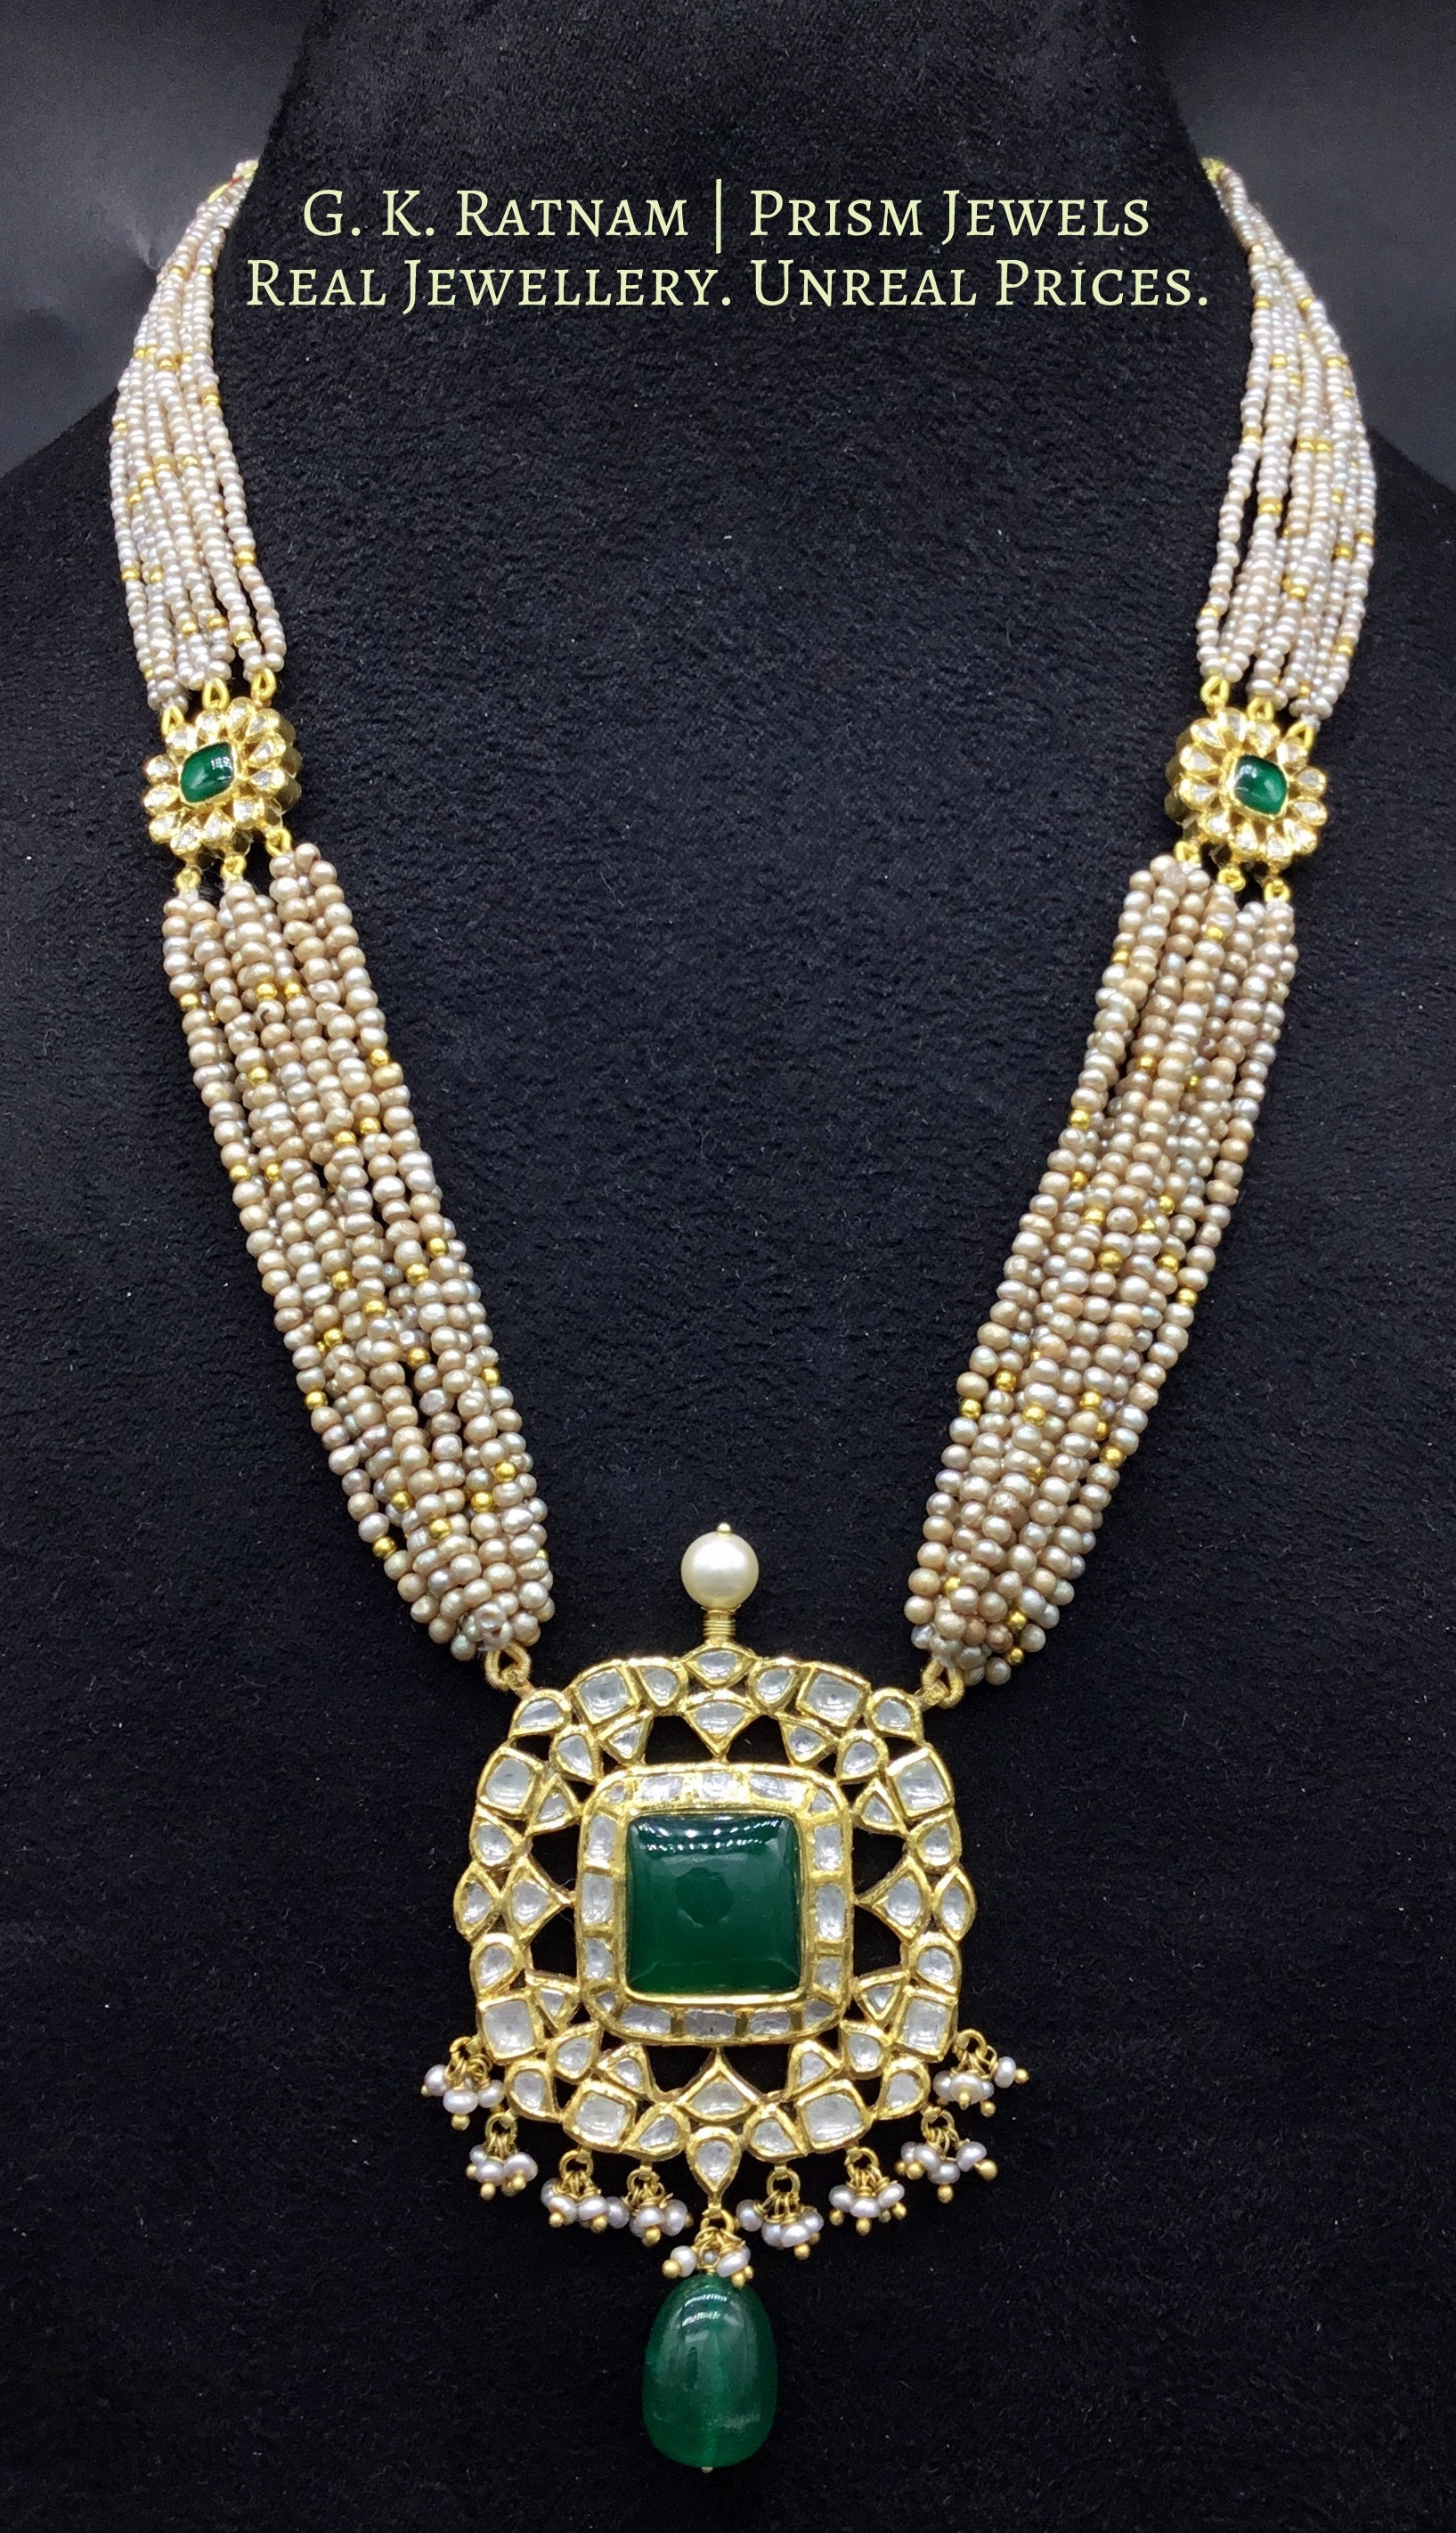 Traditional Gold and Diamond Polki Pendant strung with Antiqued Hyderabadi Pearls - gold diamond polki kundan meena jadau jewellery